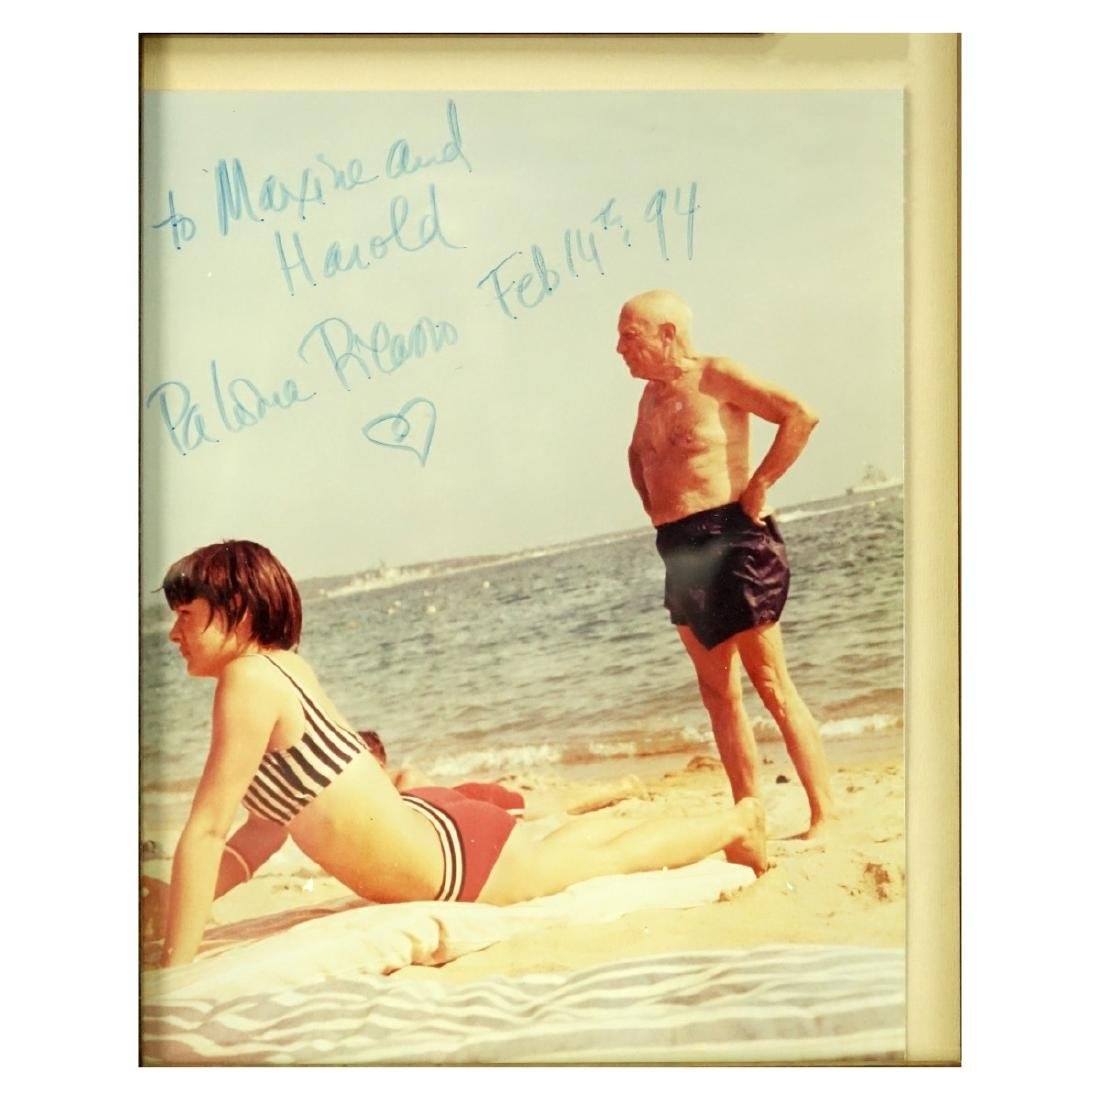 Photograph Of Picasso Signed By Paloma Picasso